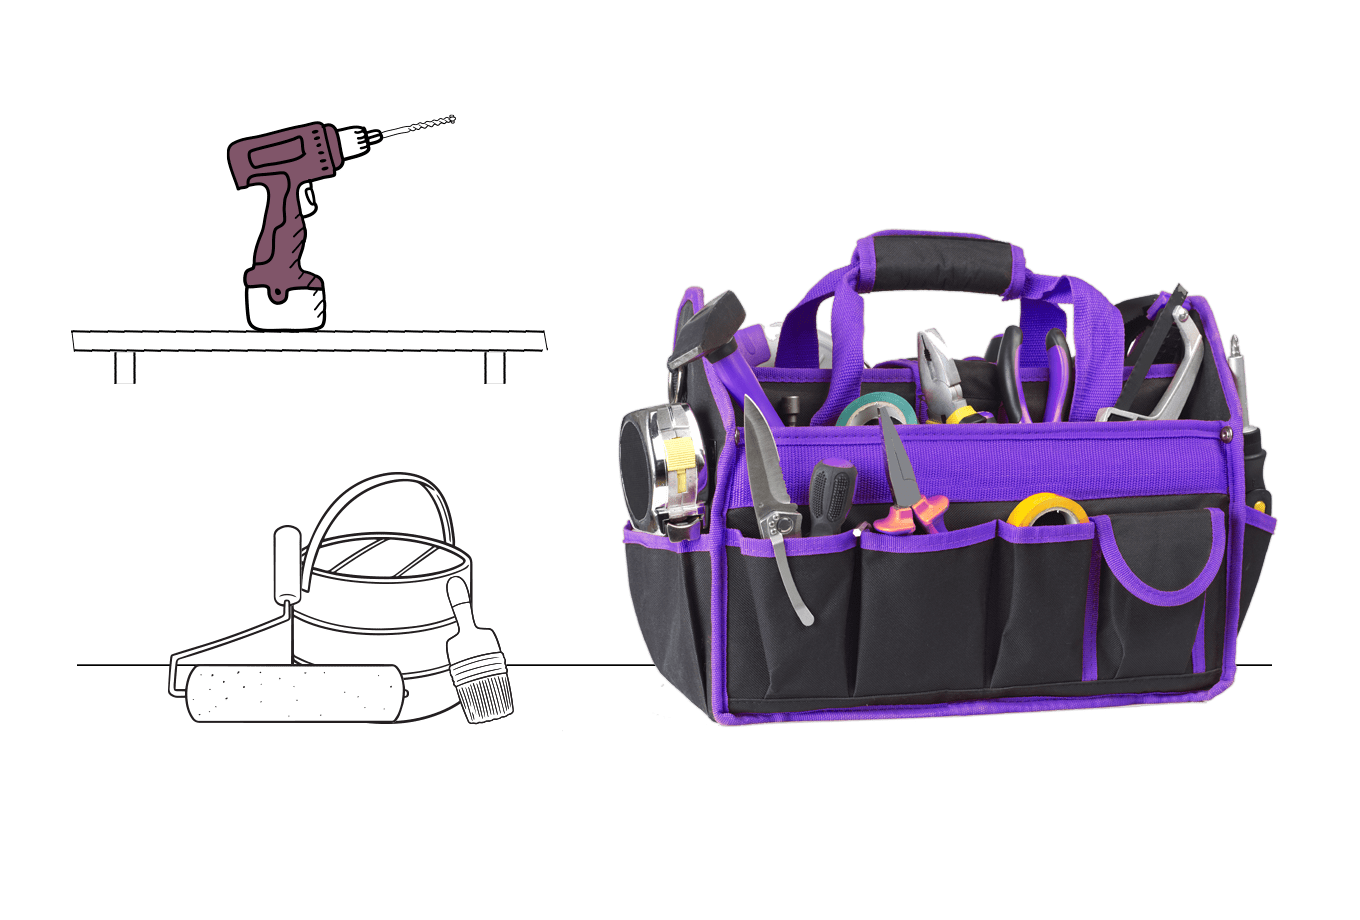 tradesman insurance illustration of tool bag power drill and paint